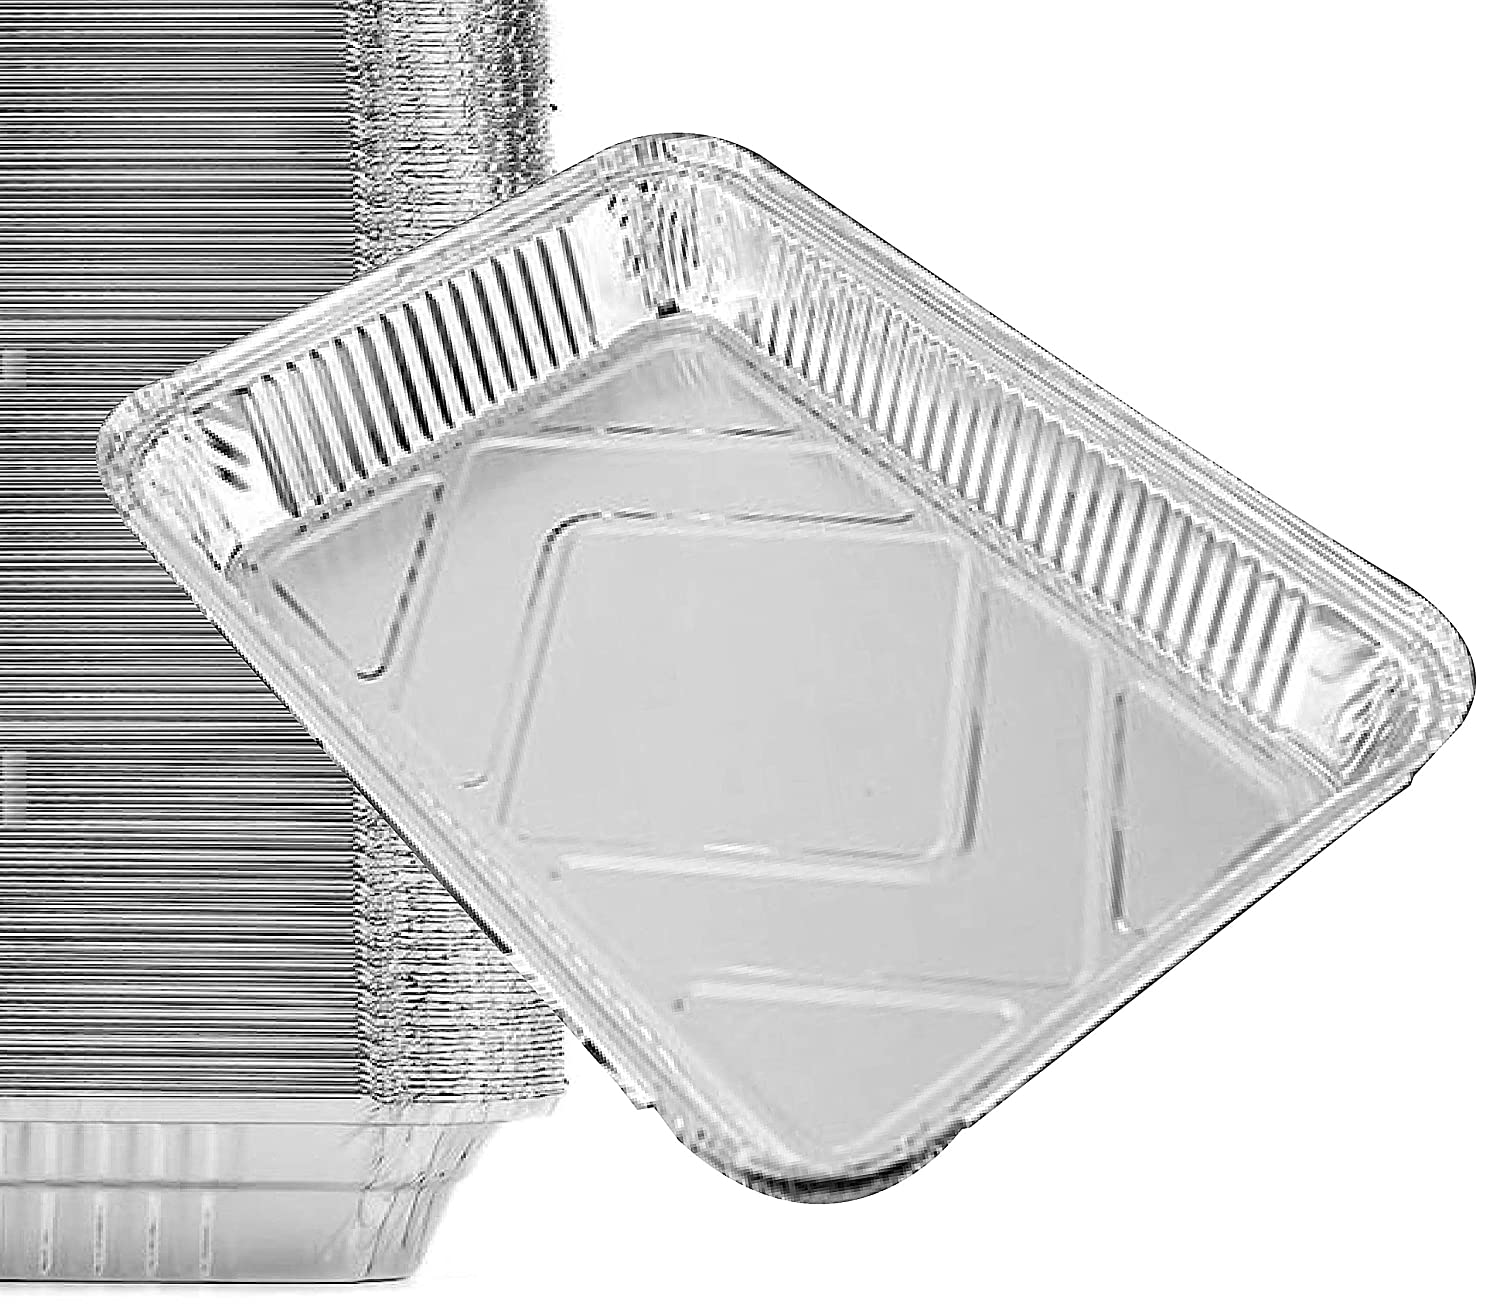 "15 Pack - Durable Chafing Pans, Half Size Roasting Pans - Disposable Aluminum Foil Steam Table Deep Pans, Buffet Pans Size - 10"" x 13"" by Spare Essentials"